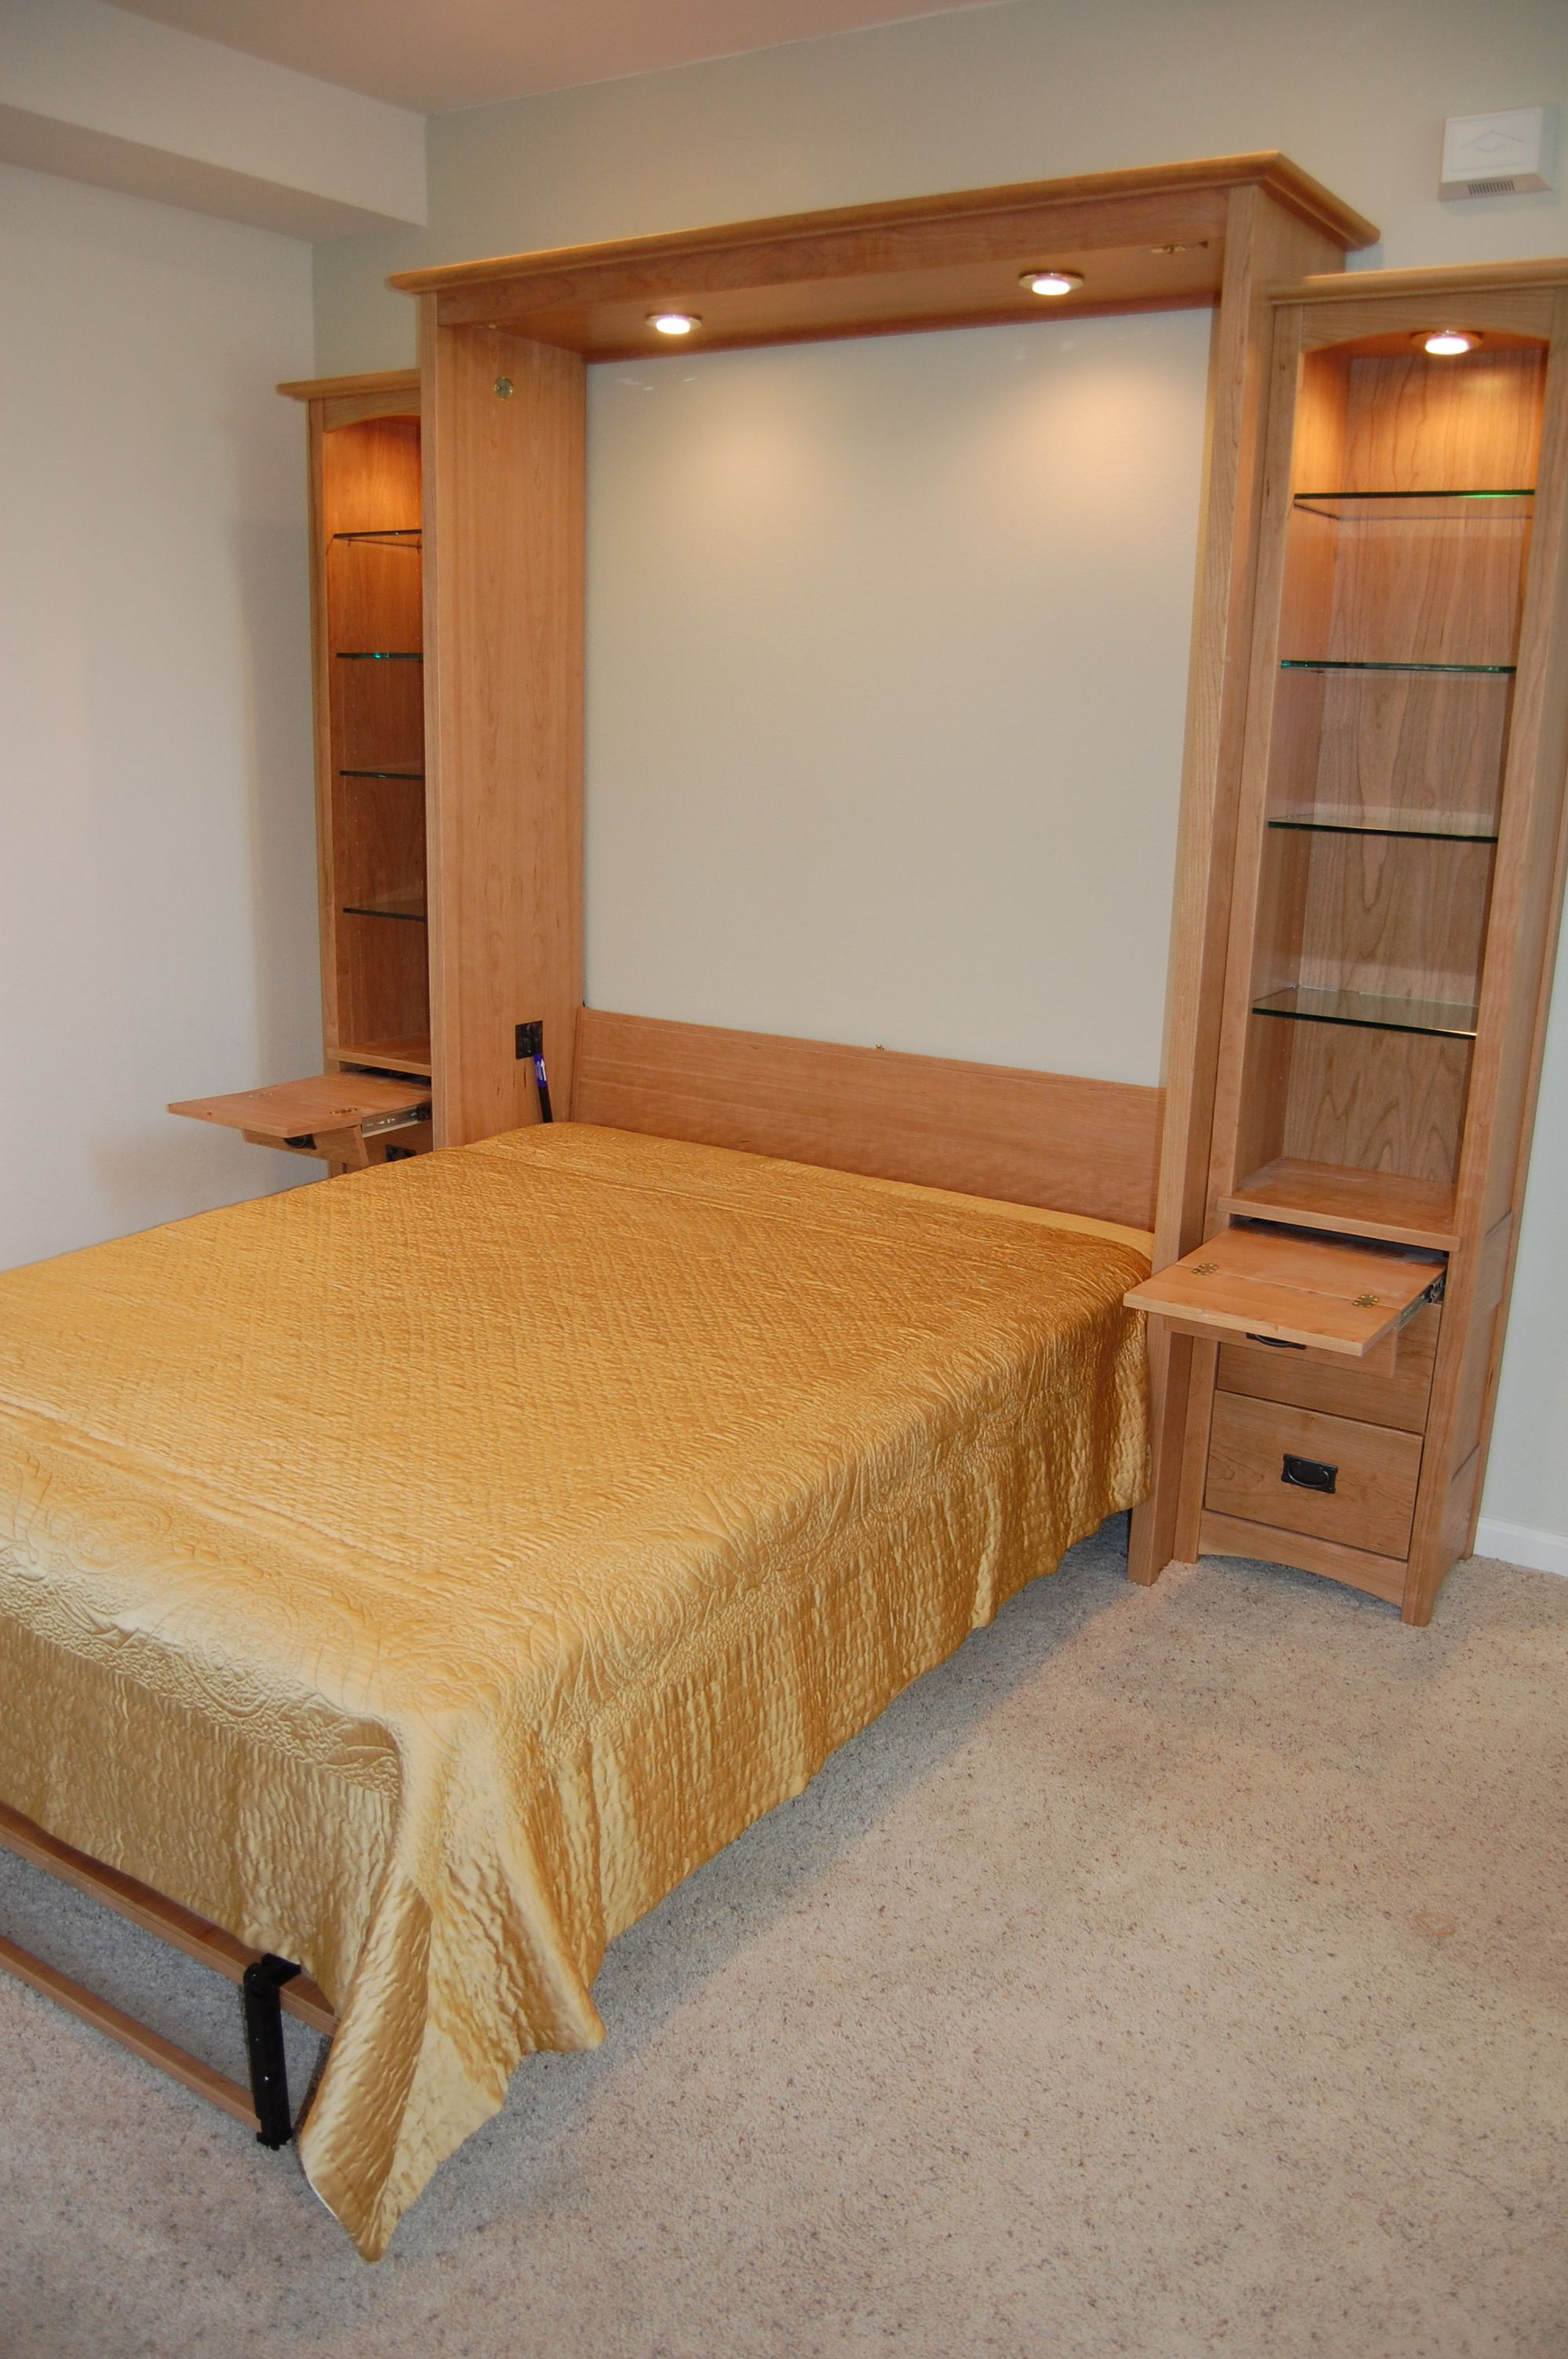 Retractable Tables craftsman style wallbed (murphy bed) with hidden retractable